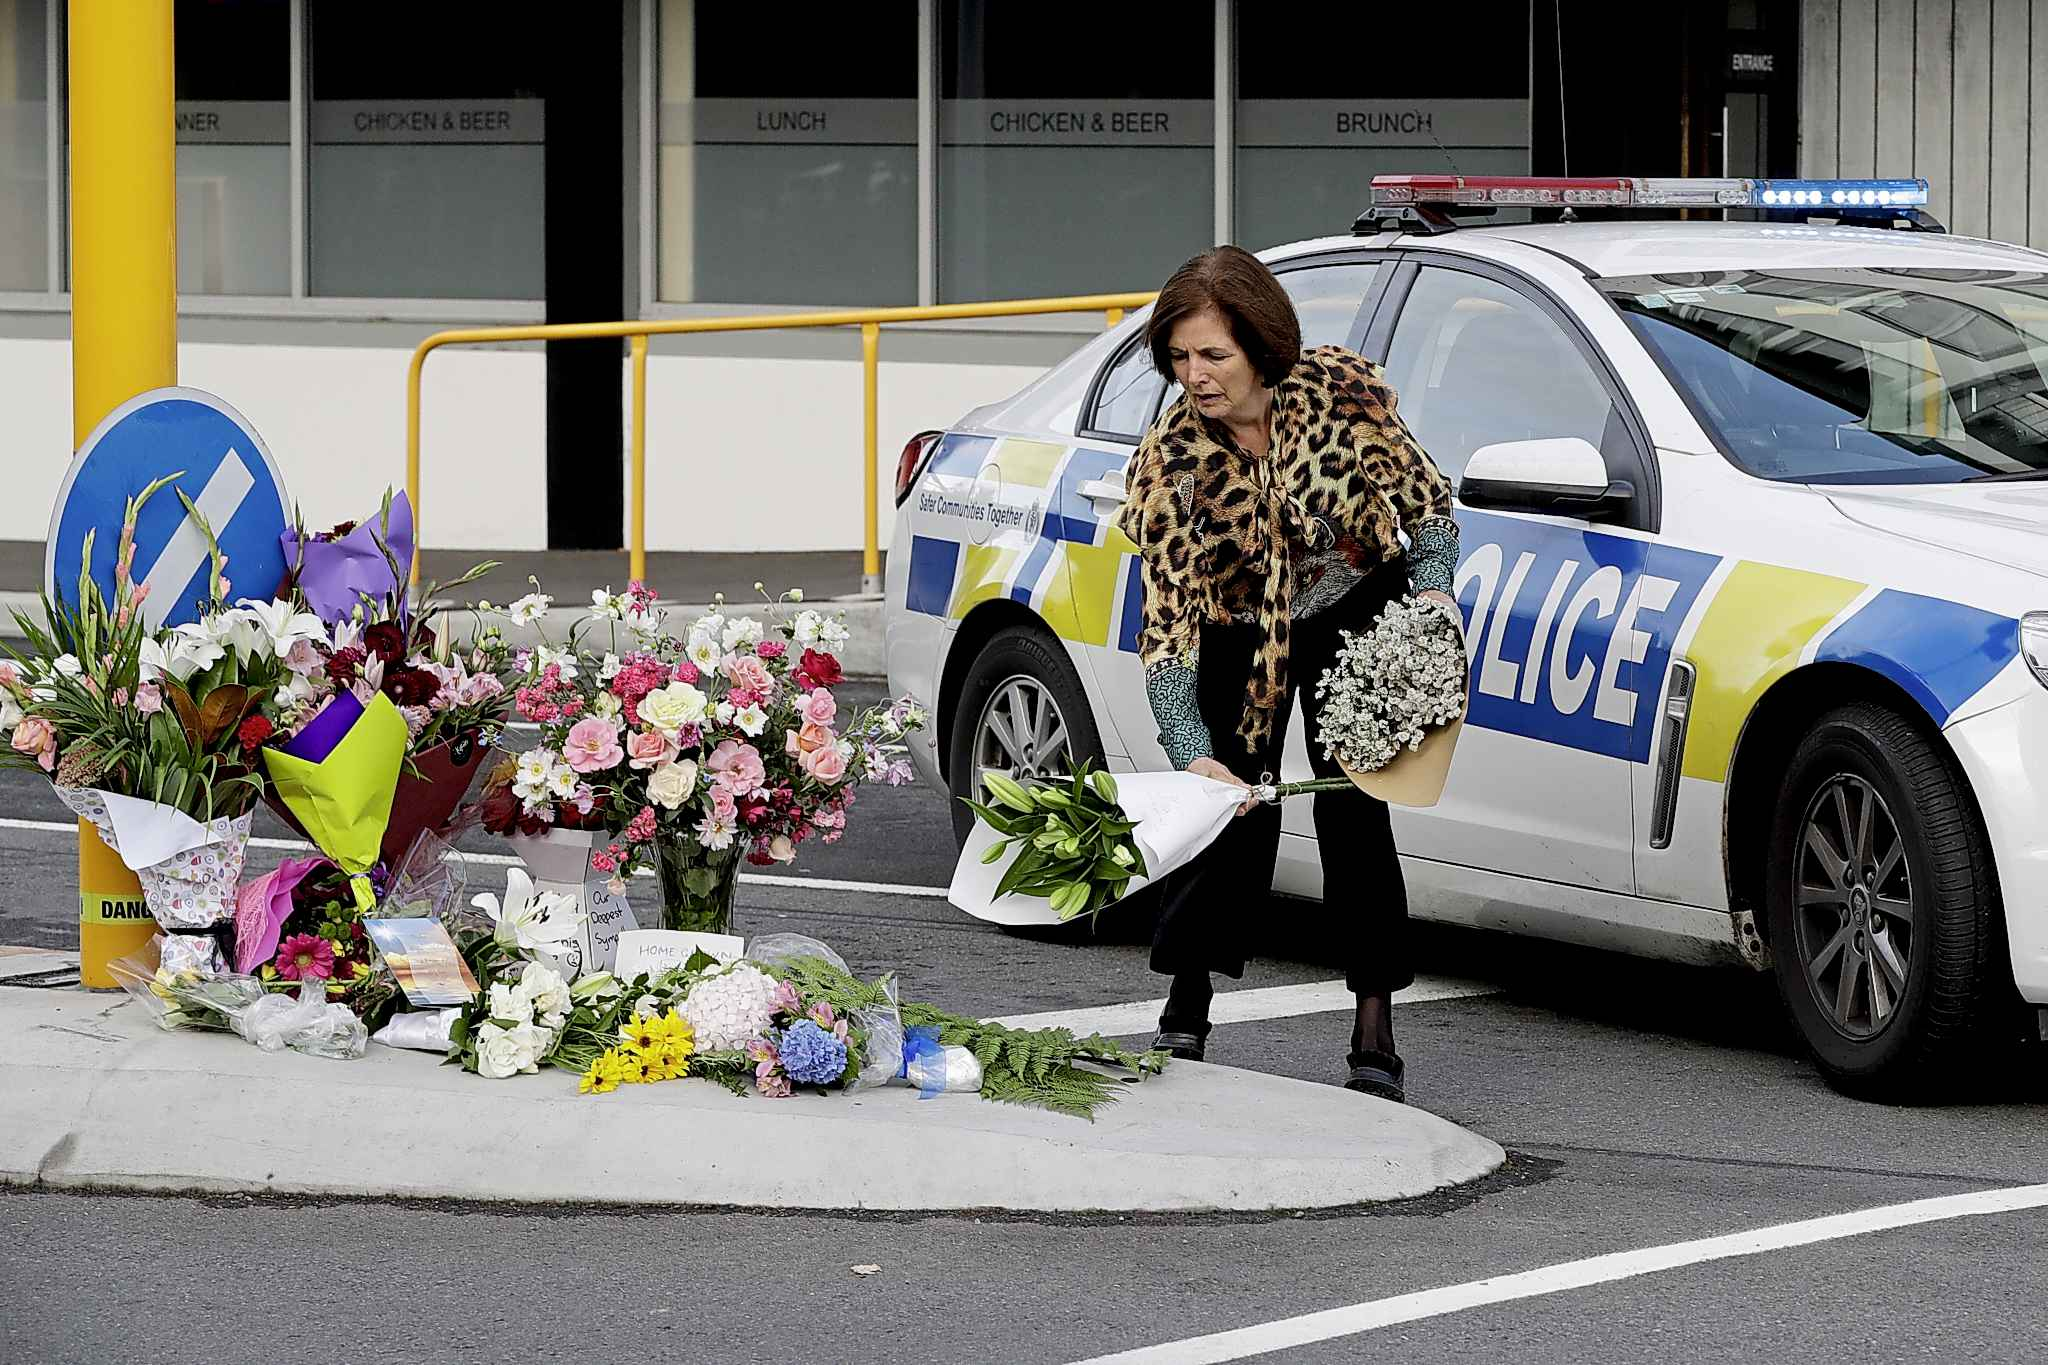 A woman places flowers at a make-shift memorial near the mosque in Christchurch where one of the mass shootings occurred. The alleged shooter claims to have formed his racist views based on travels abroad and material available on the internet.  (Mark Baker / The Associated Press)